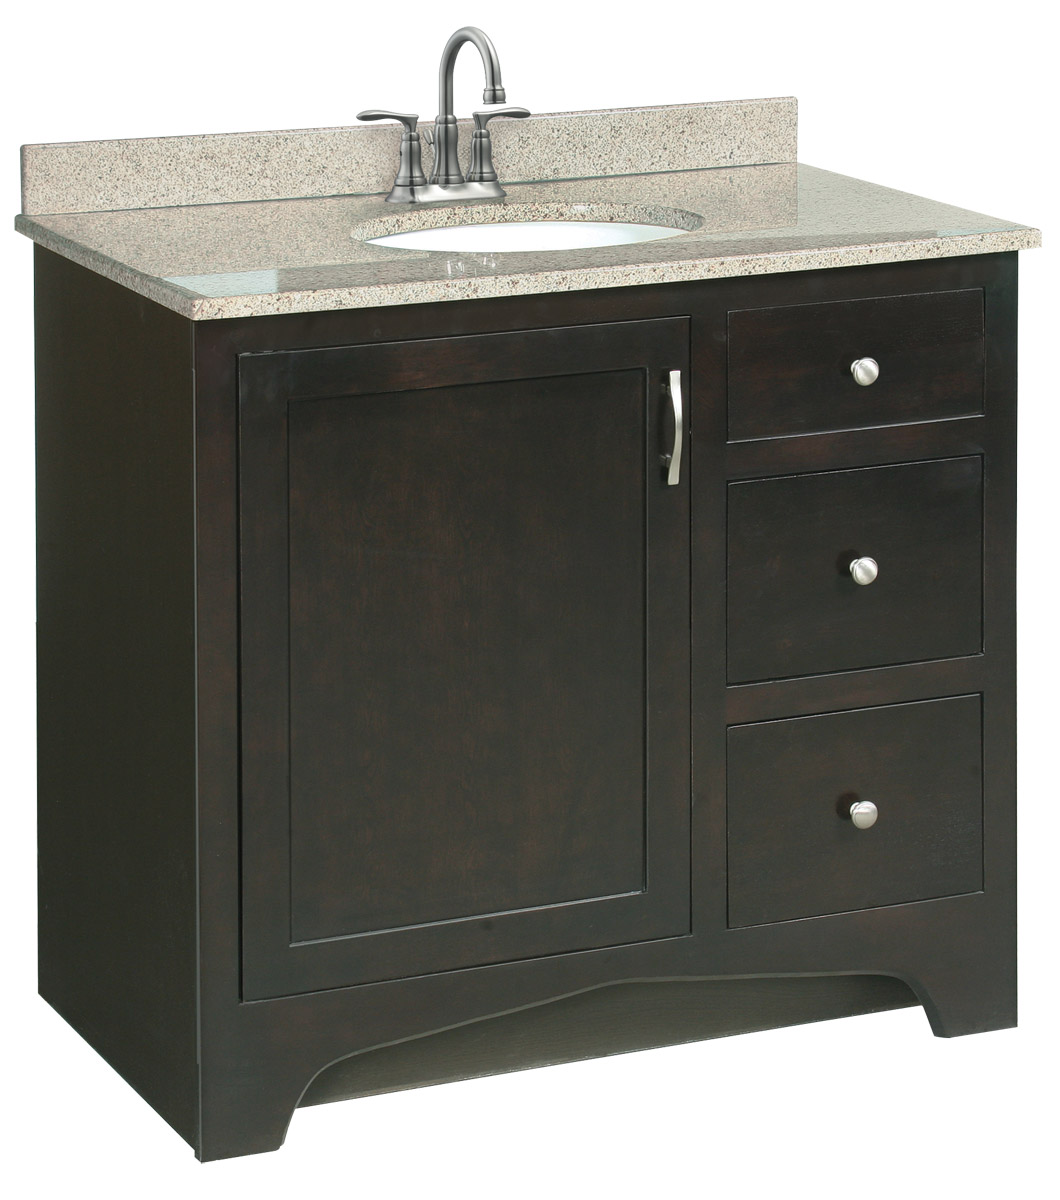 Design House 541284 Ventura Espresso Vanity Cabinet with 1-Door and 2-Drawers 36-Inches by 33.5-Inches